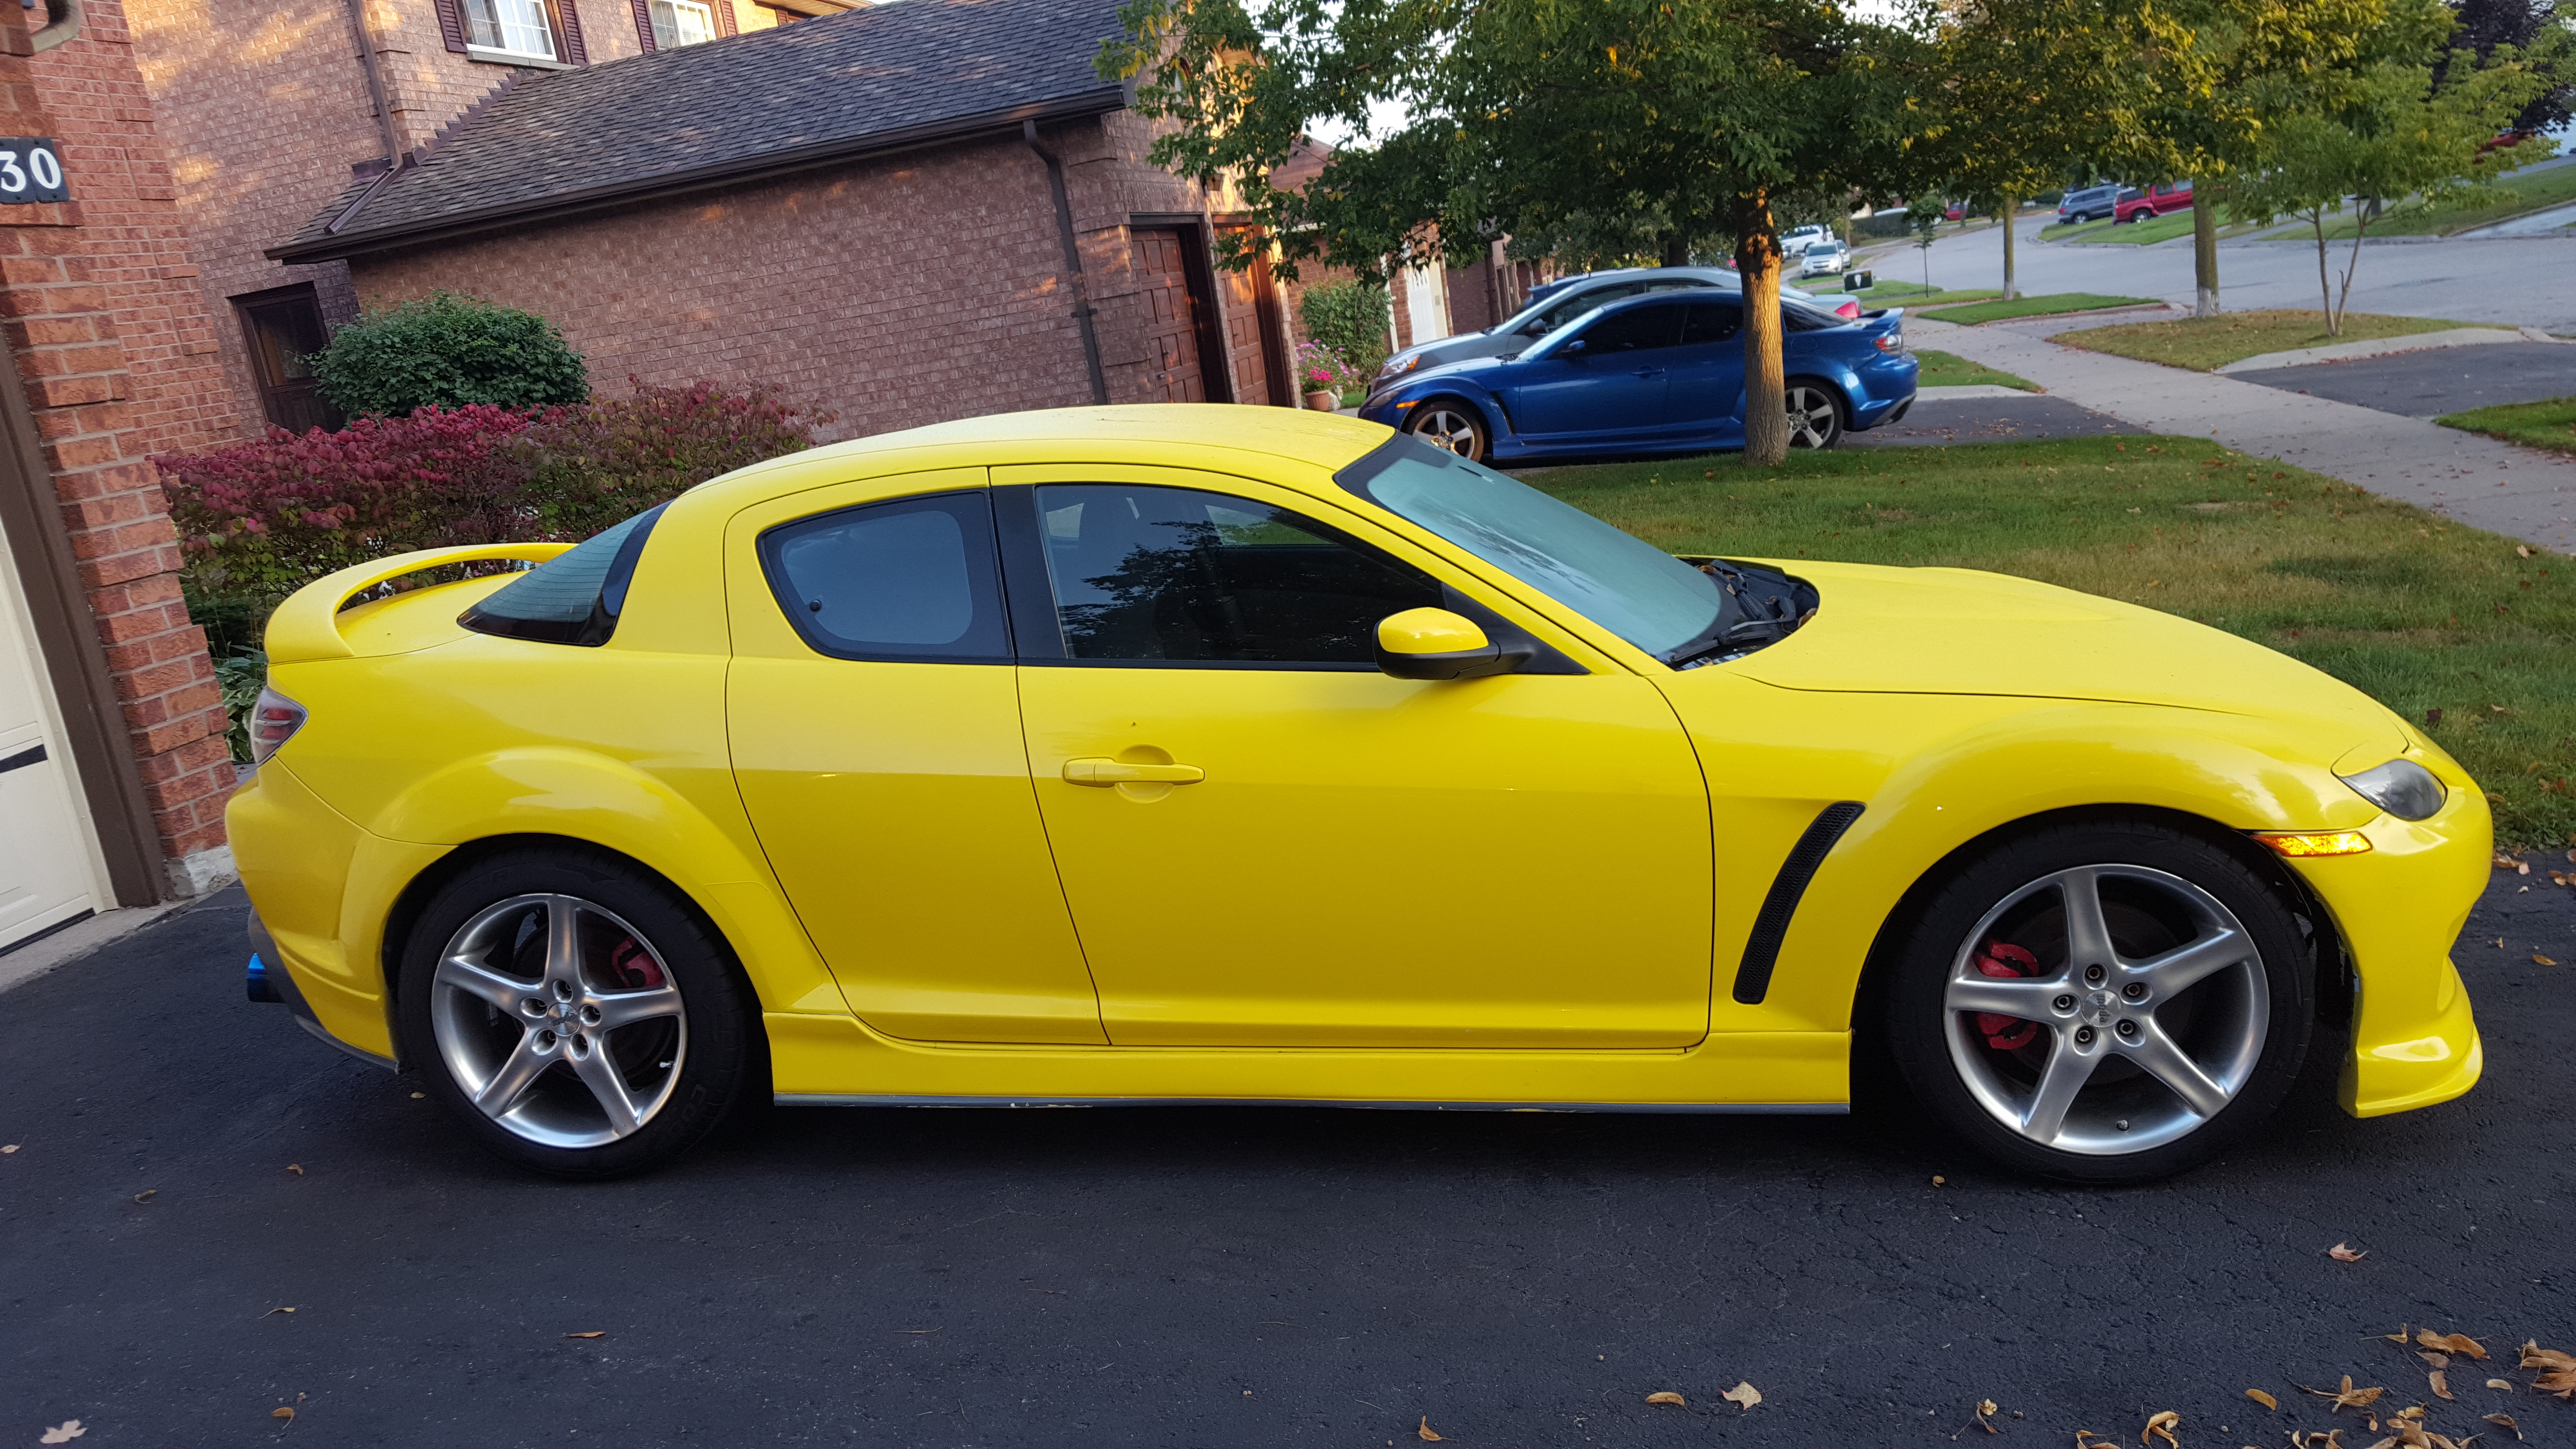 2004 Mazda Rx8 For Sale In Whitby